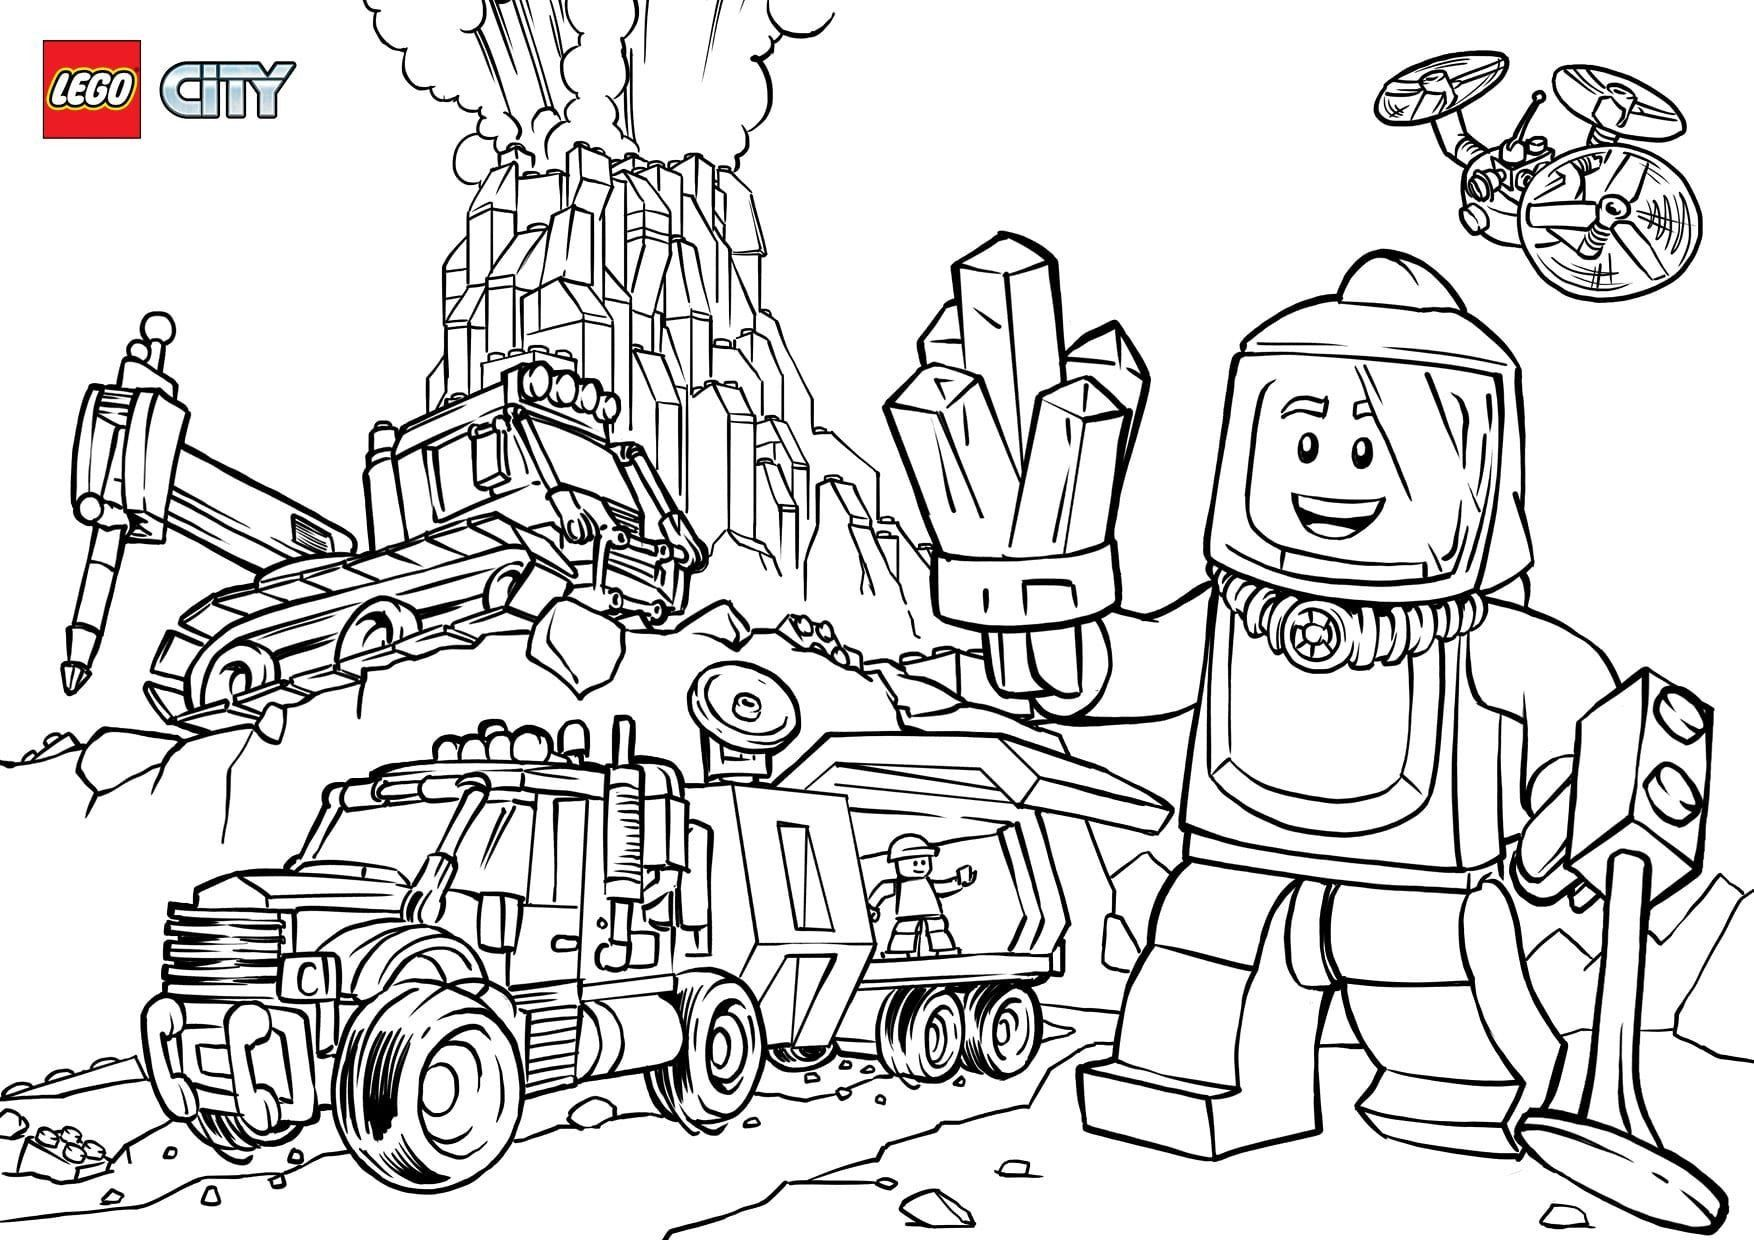 Lego City Coloring Pages Volcano - Coloring Pages Ideas